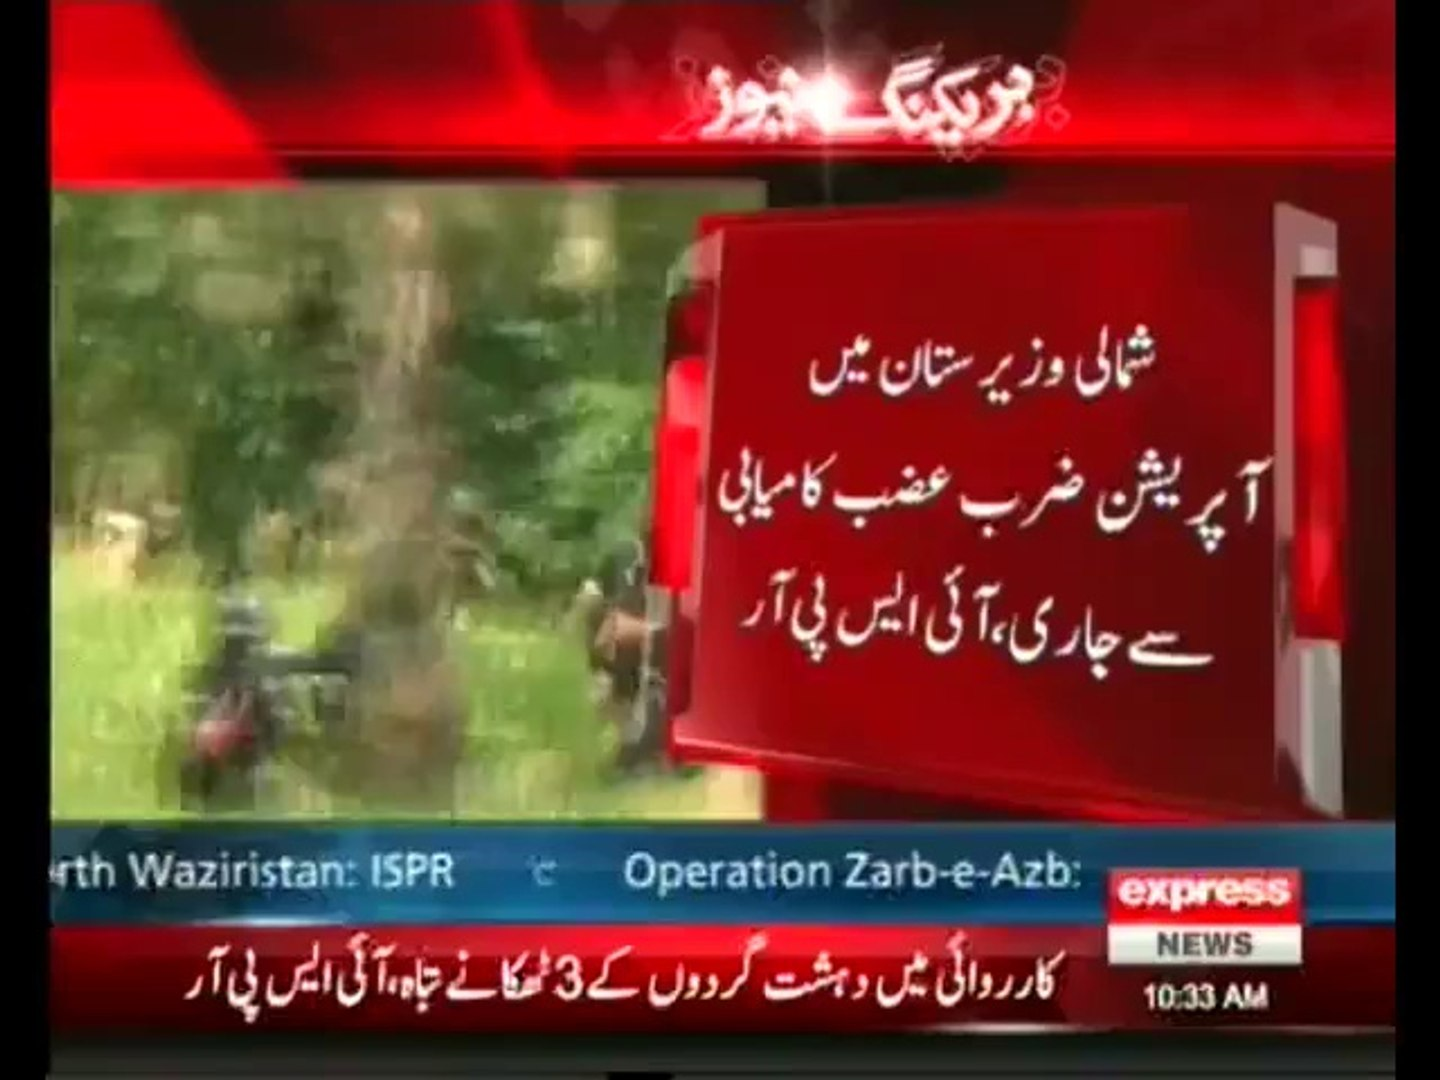 35 terrorists killed in air strikes on Datta Khel, NWA, 3 hideouts destroyed, says ISPR